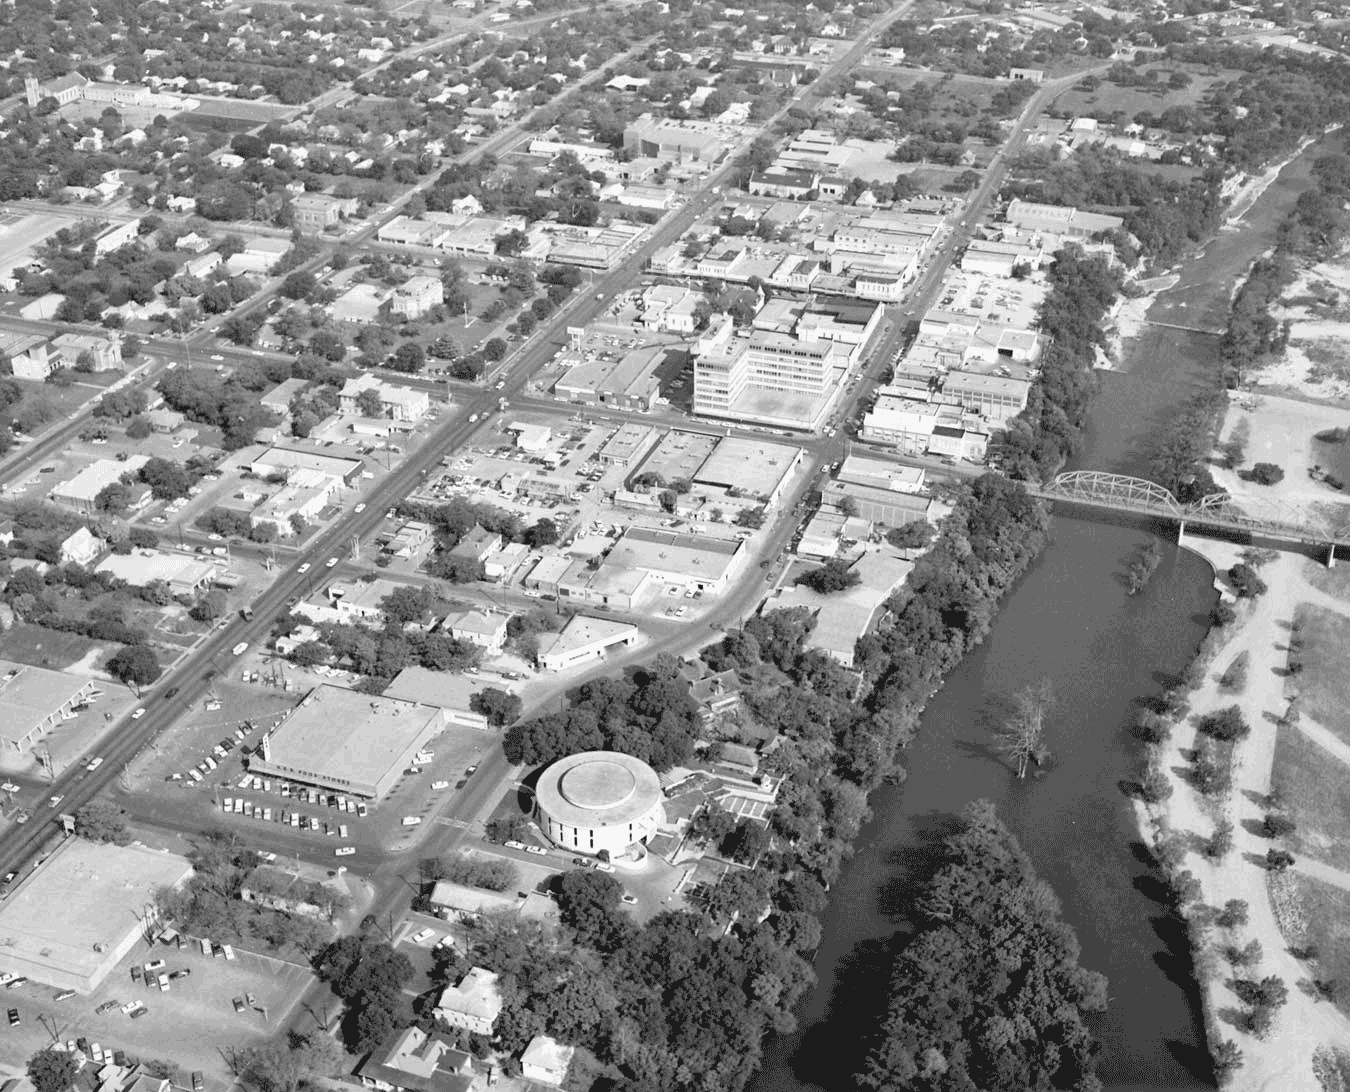 Aerial image of Kerrville